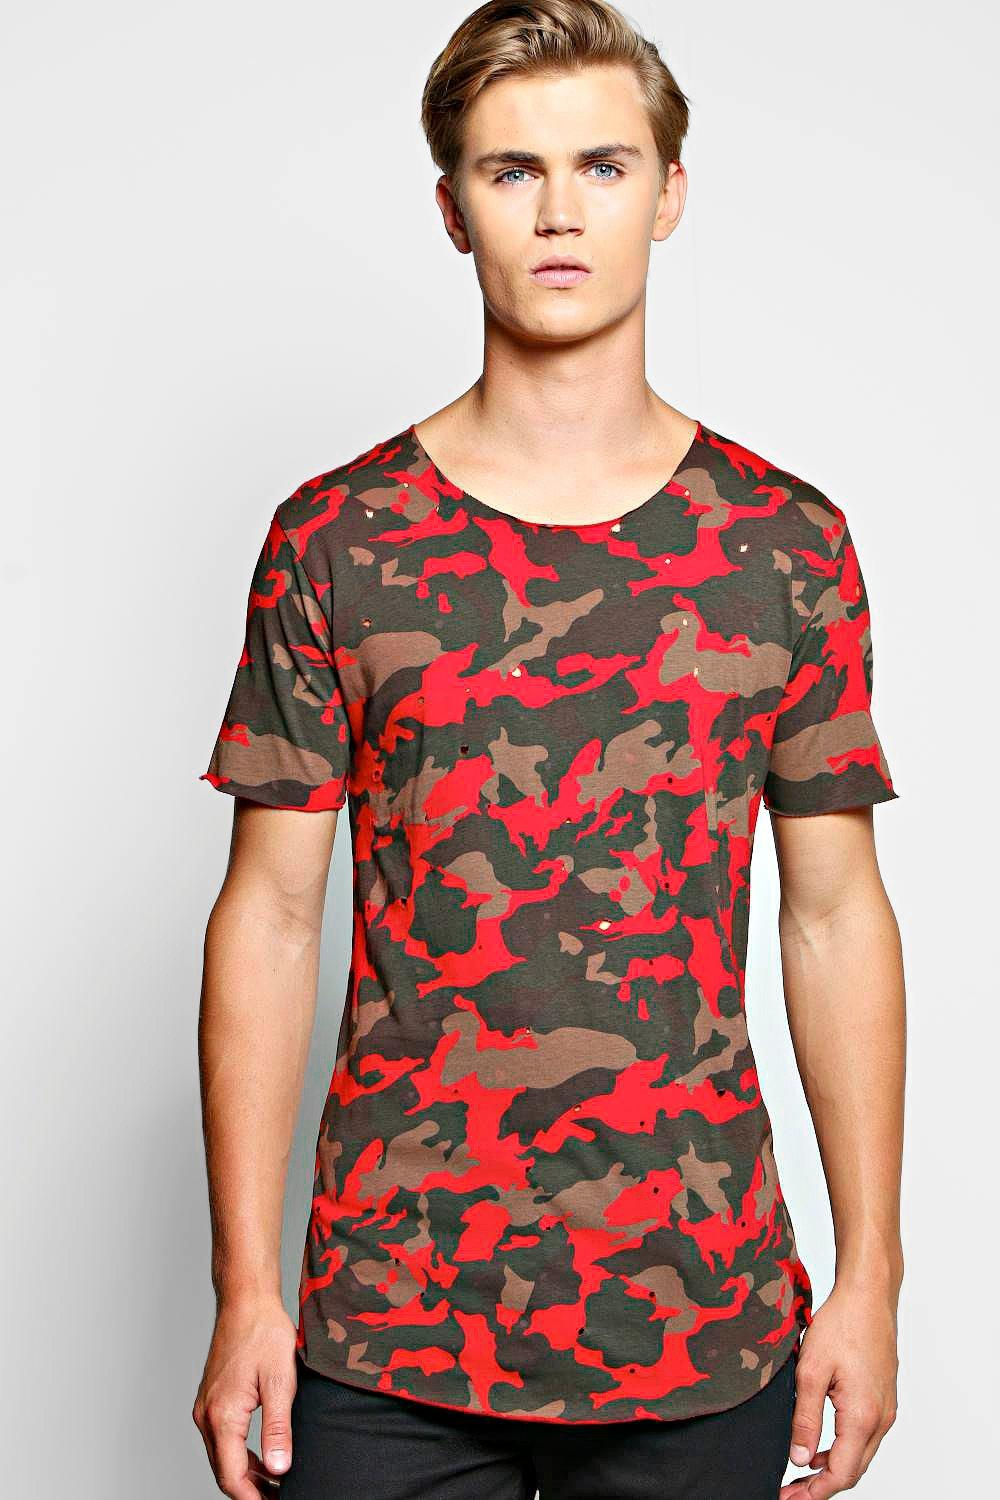 Skater Camo T Shirt With Distressing